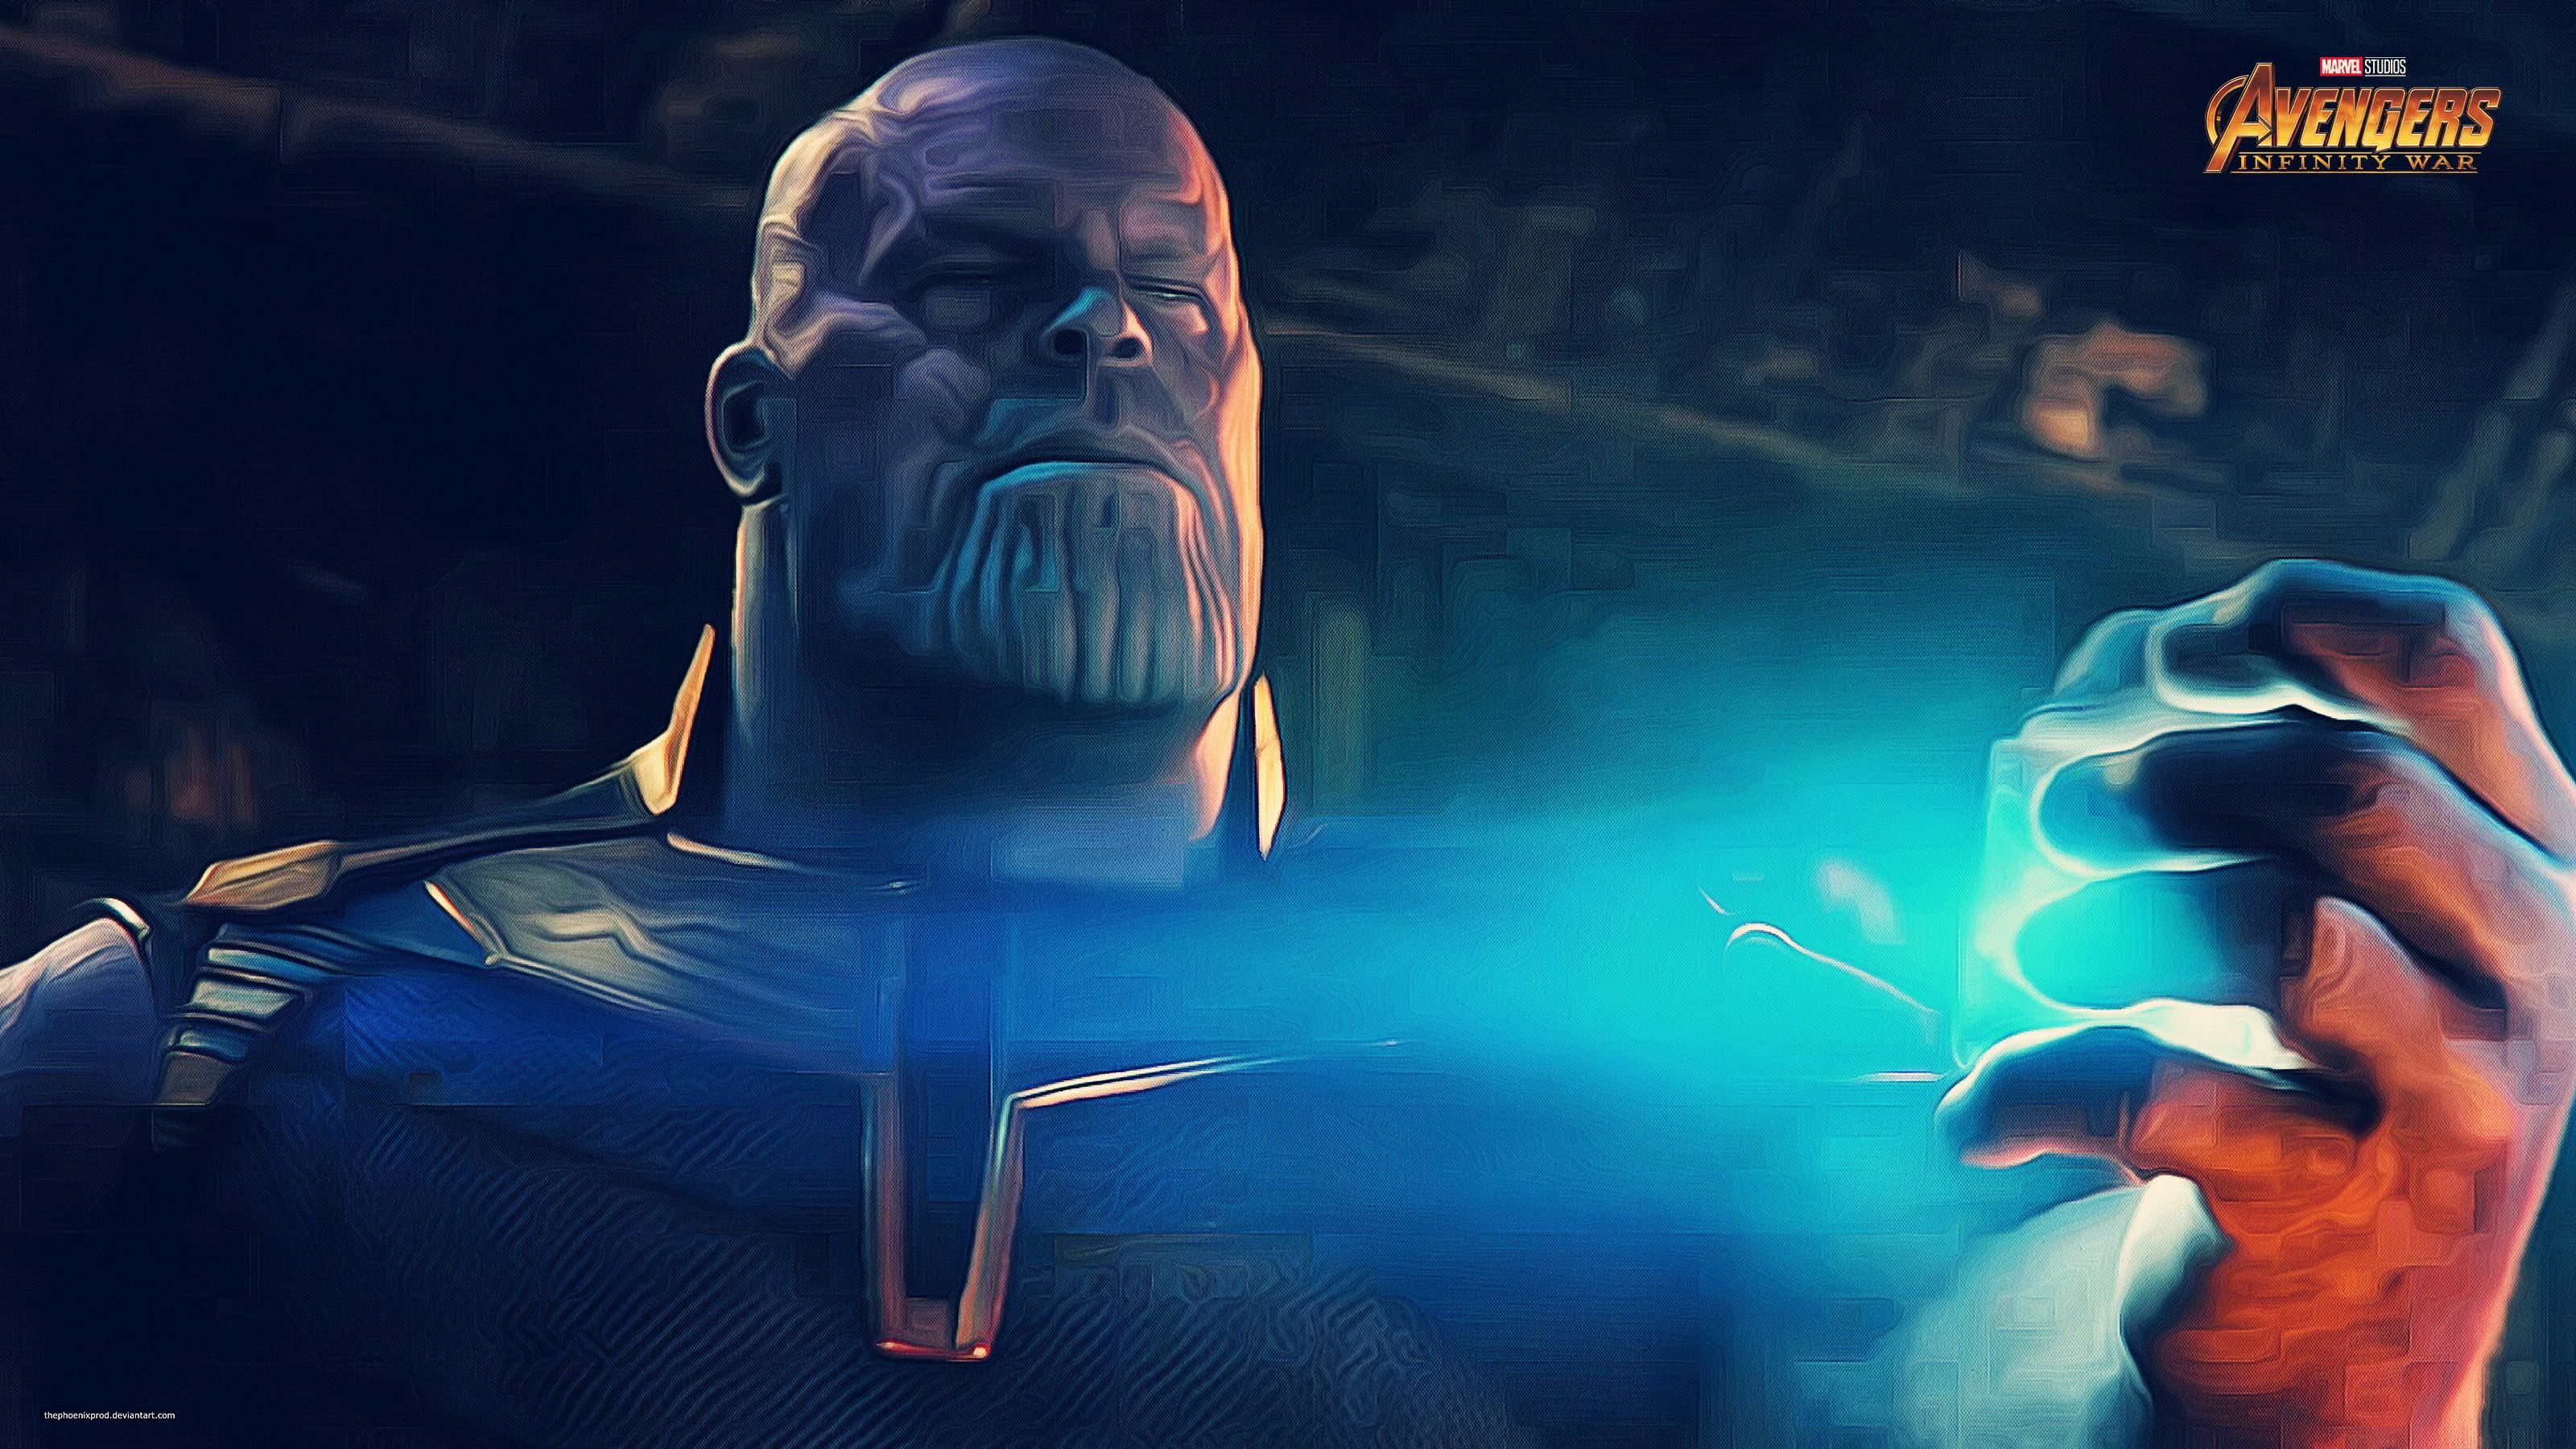 3200x1800  Marvel Avengers Thanos digital wallpaper HD wallpaper | Wallpaper  Flare